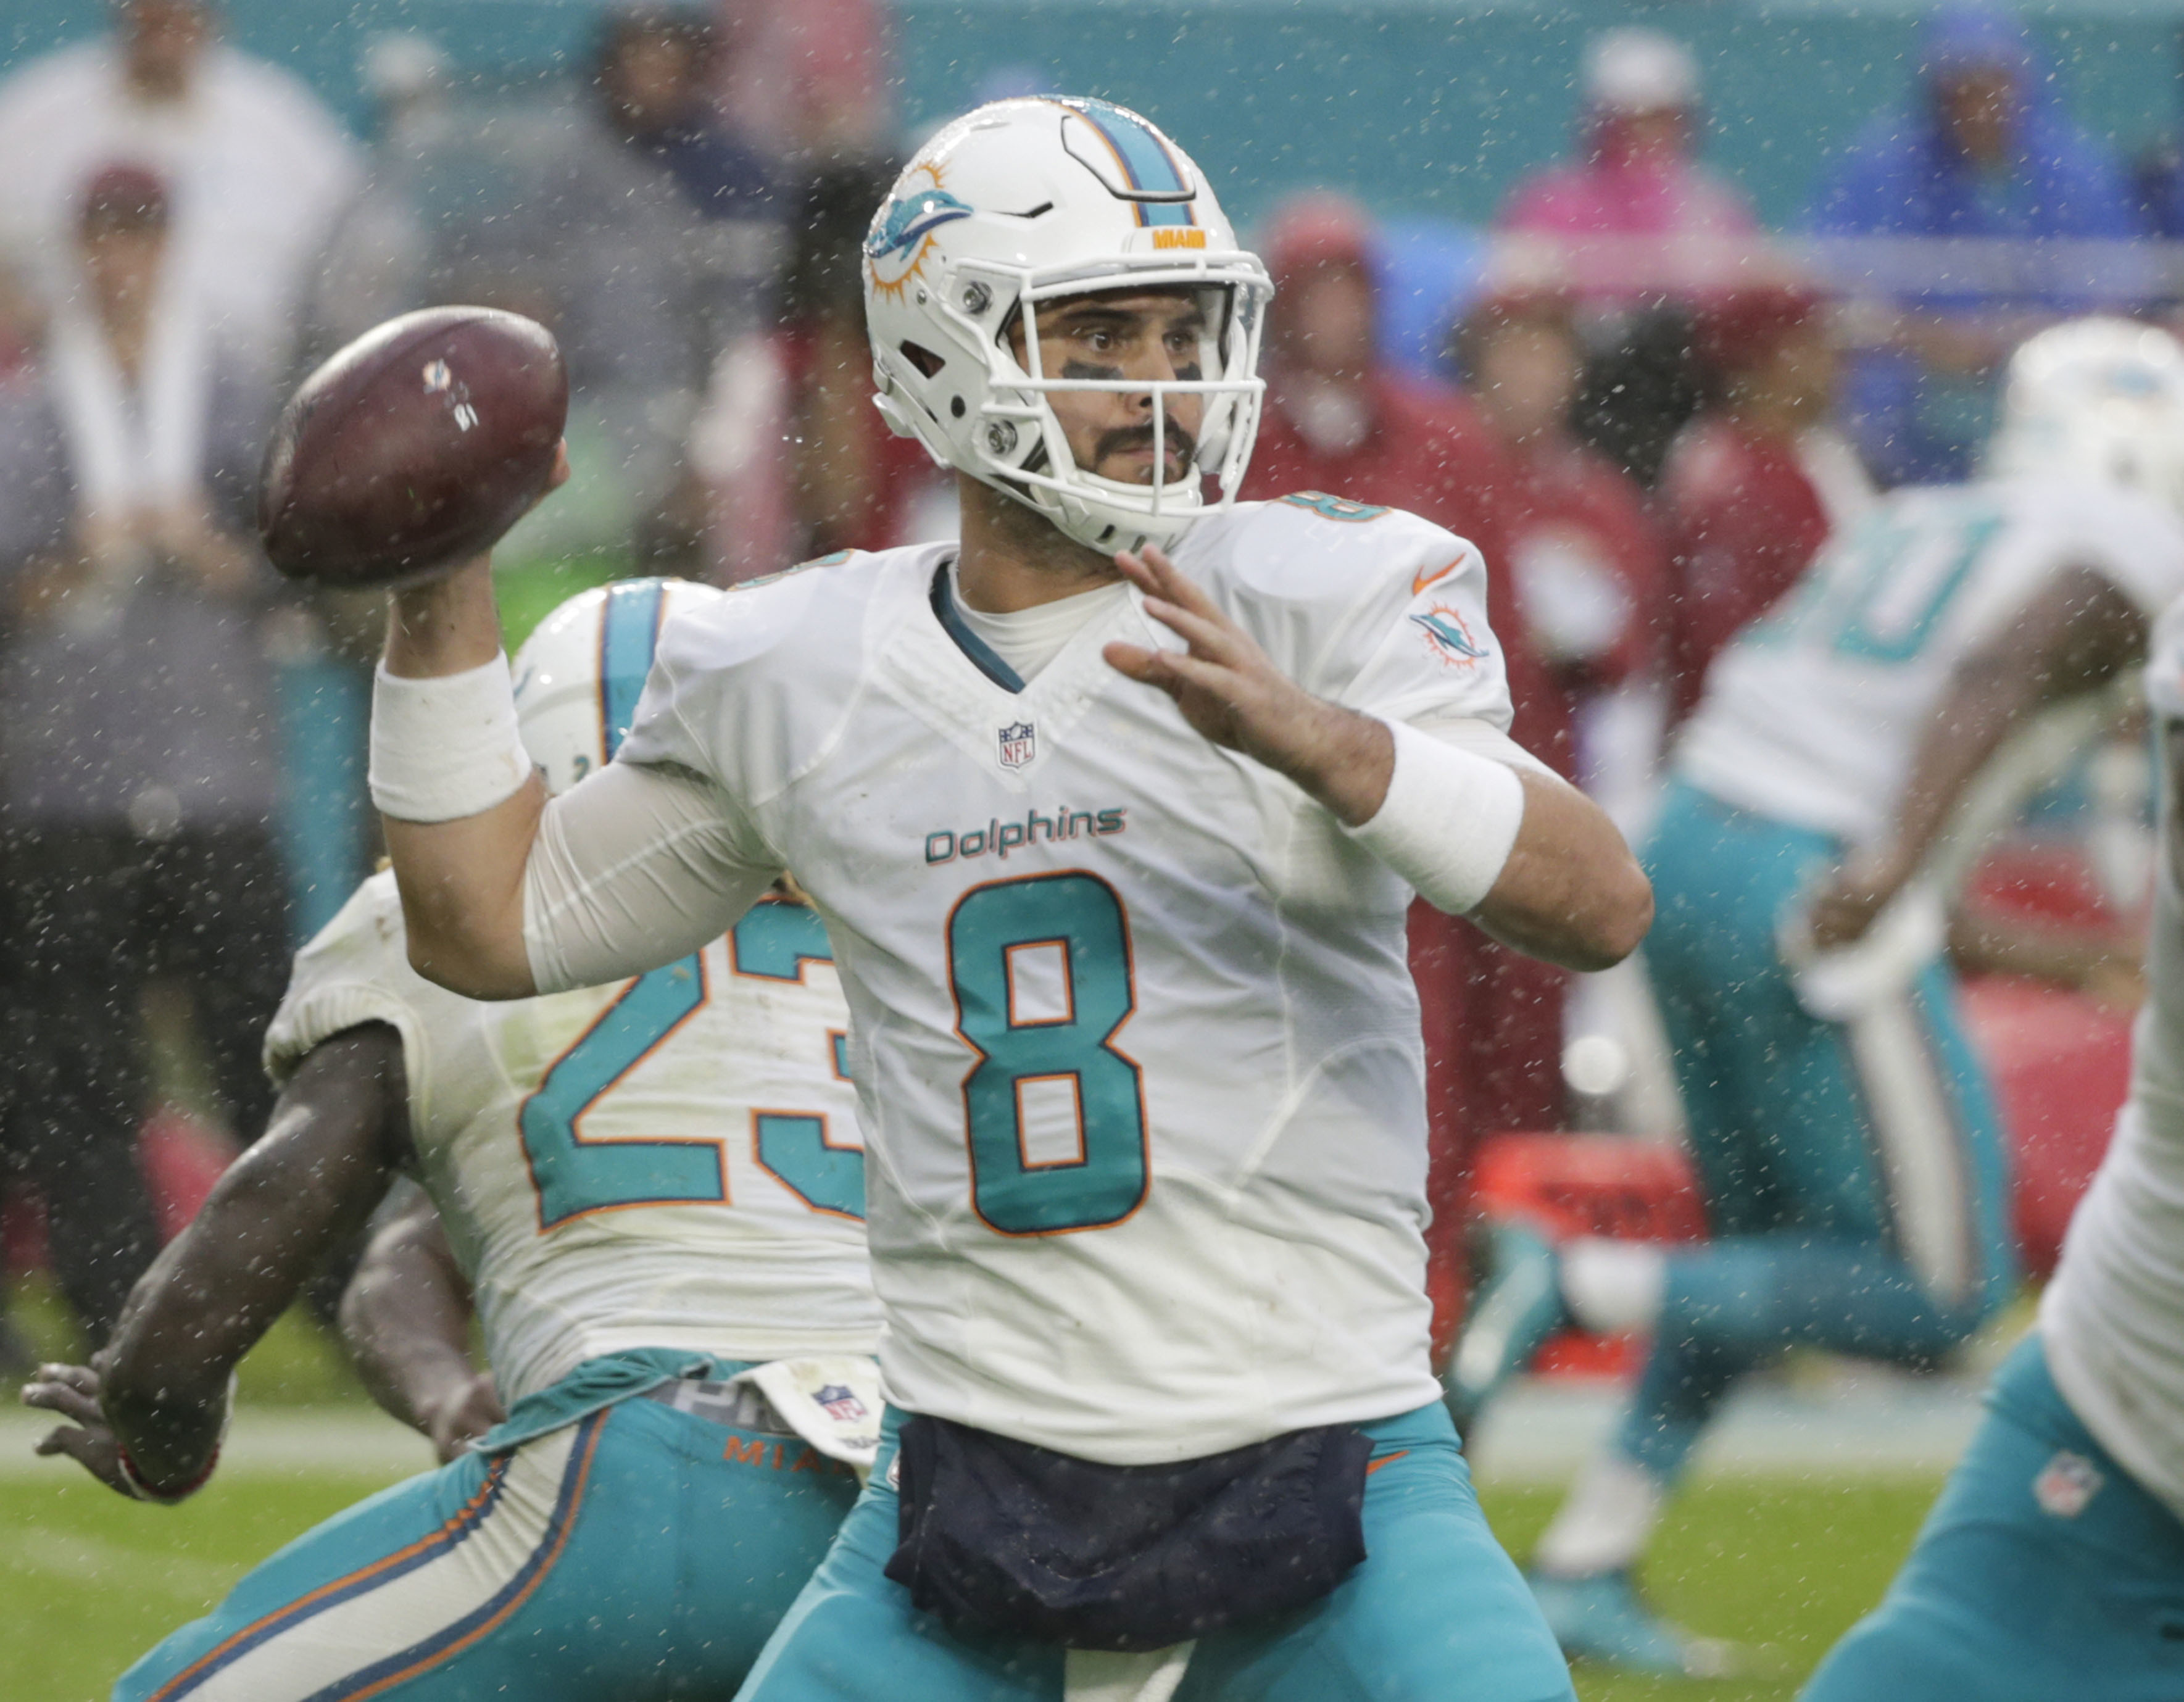 FILE - In this Dec. 11, 2016, file photo Miami Dolphins quarterback Matt Moore (8) looks to pass, during the second half of an NFL football game against the Arizona Cardinals in Miami Gardens, Fla. Moore will start Saturday, Dec. 17, 2016, at the Jets as